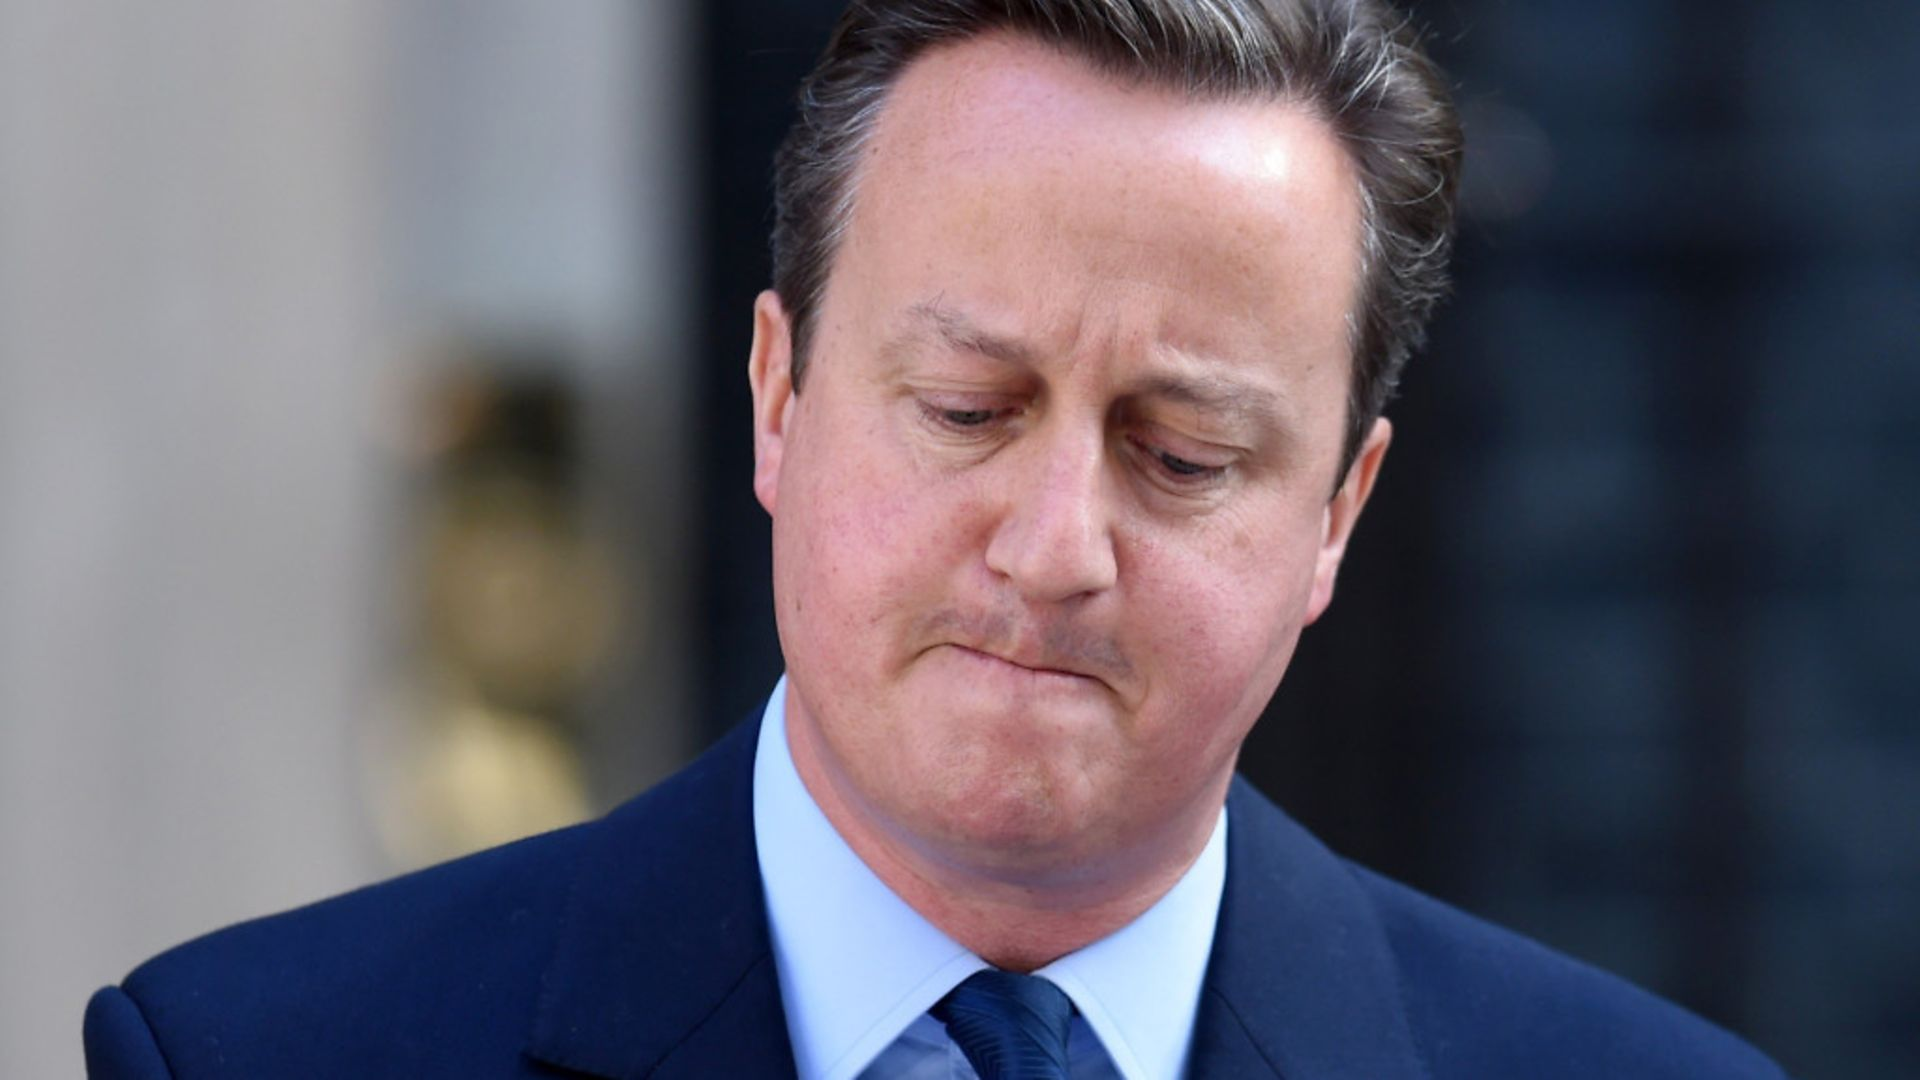 David Cameron outside Downing Street - Credit: Getty Images